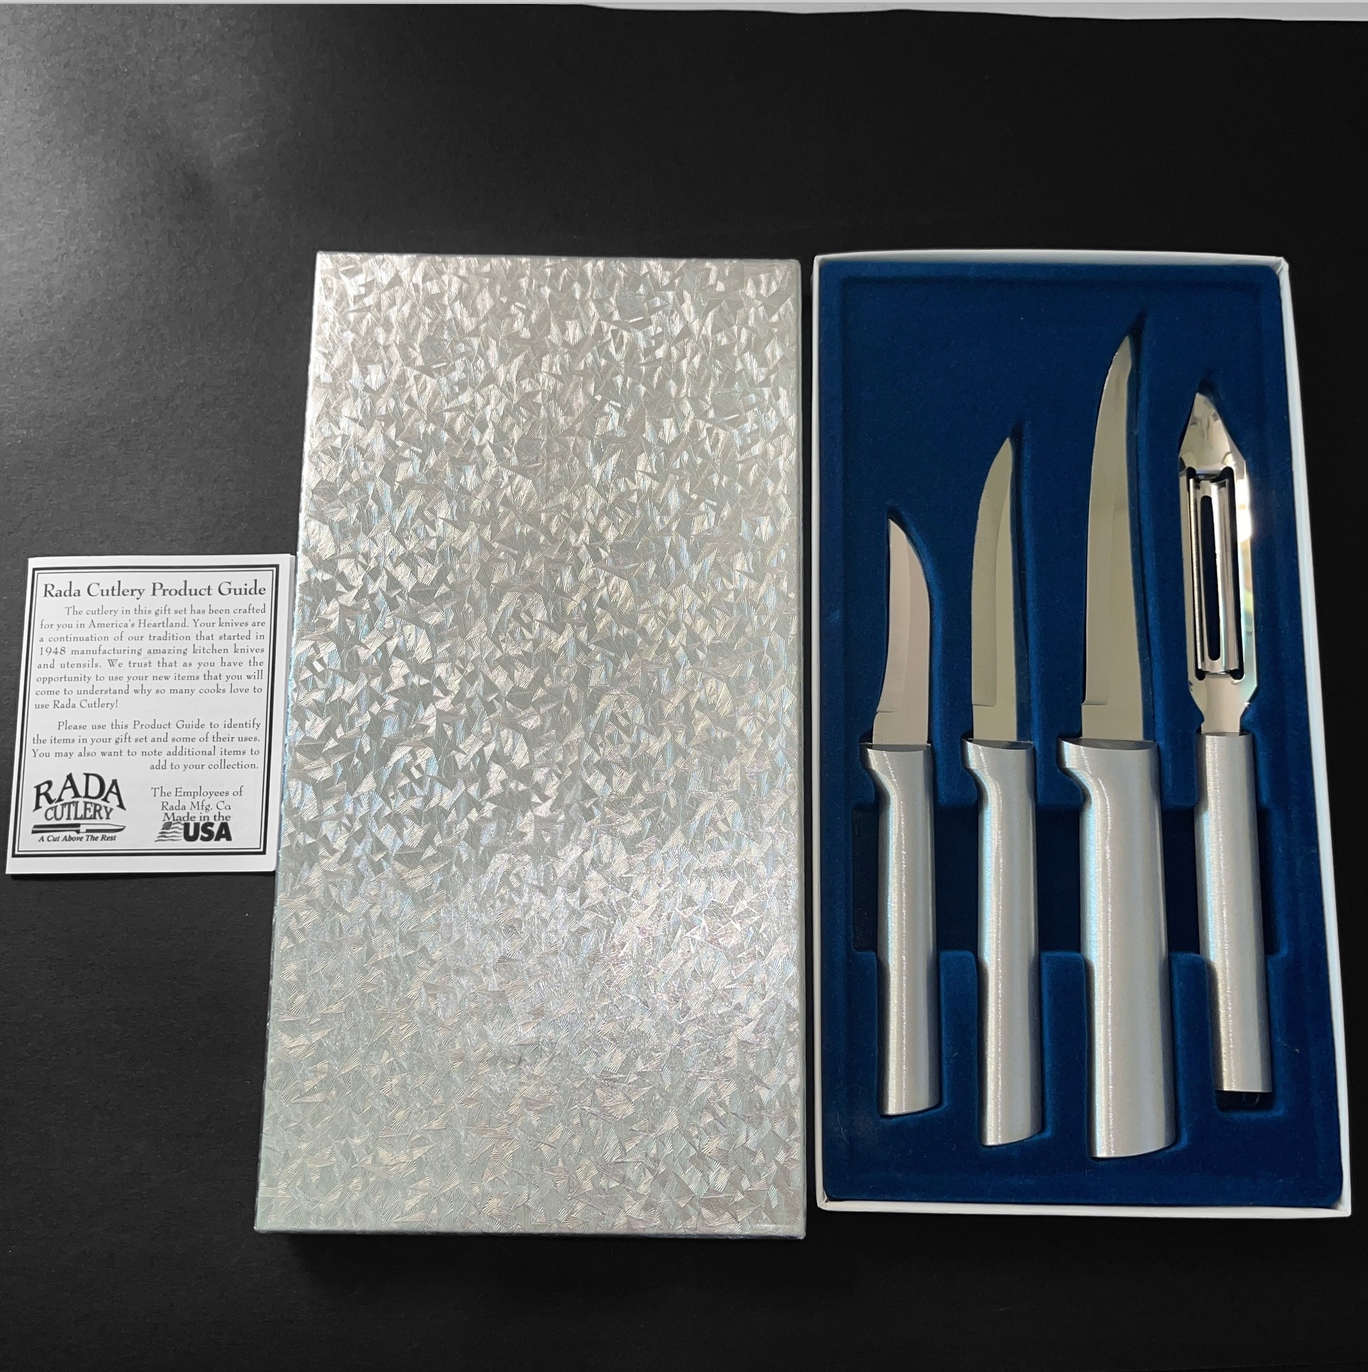 Rada Cutlery 4 Piece Paring Knife Vegetable Peeler Set New in Box with Paper - $36.99